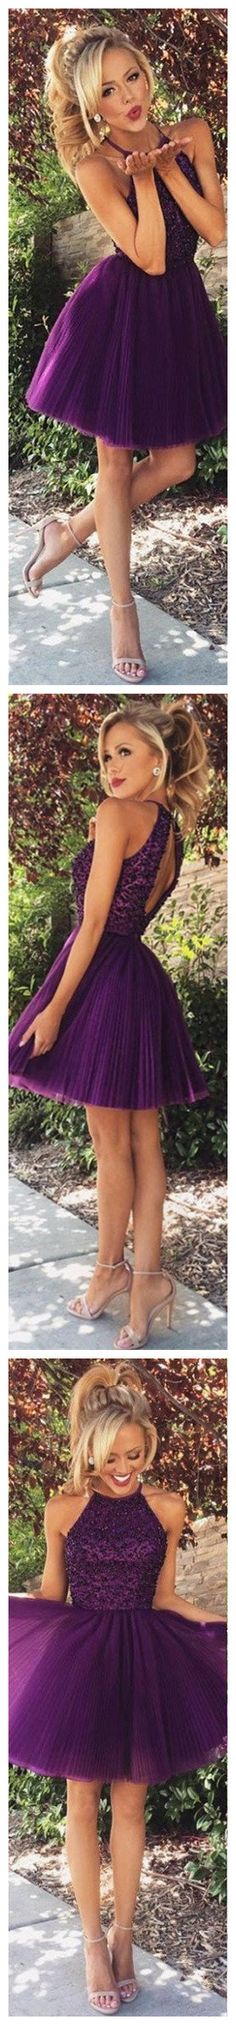 Halter High Neck Sleeveless Backless Ruched Embellished Purple Beaded Bodice Tulle Skirt,Amazing Homecoming Dresses